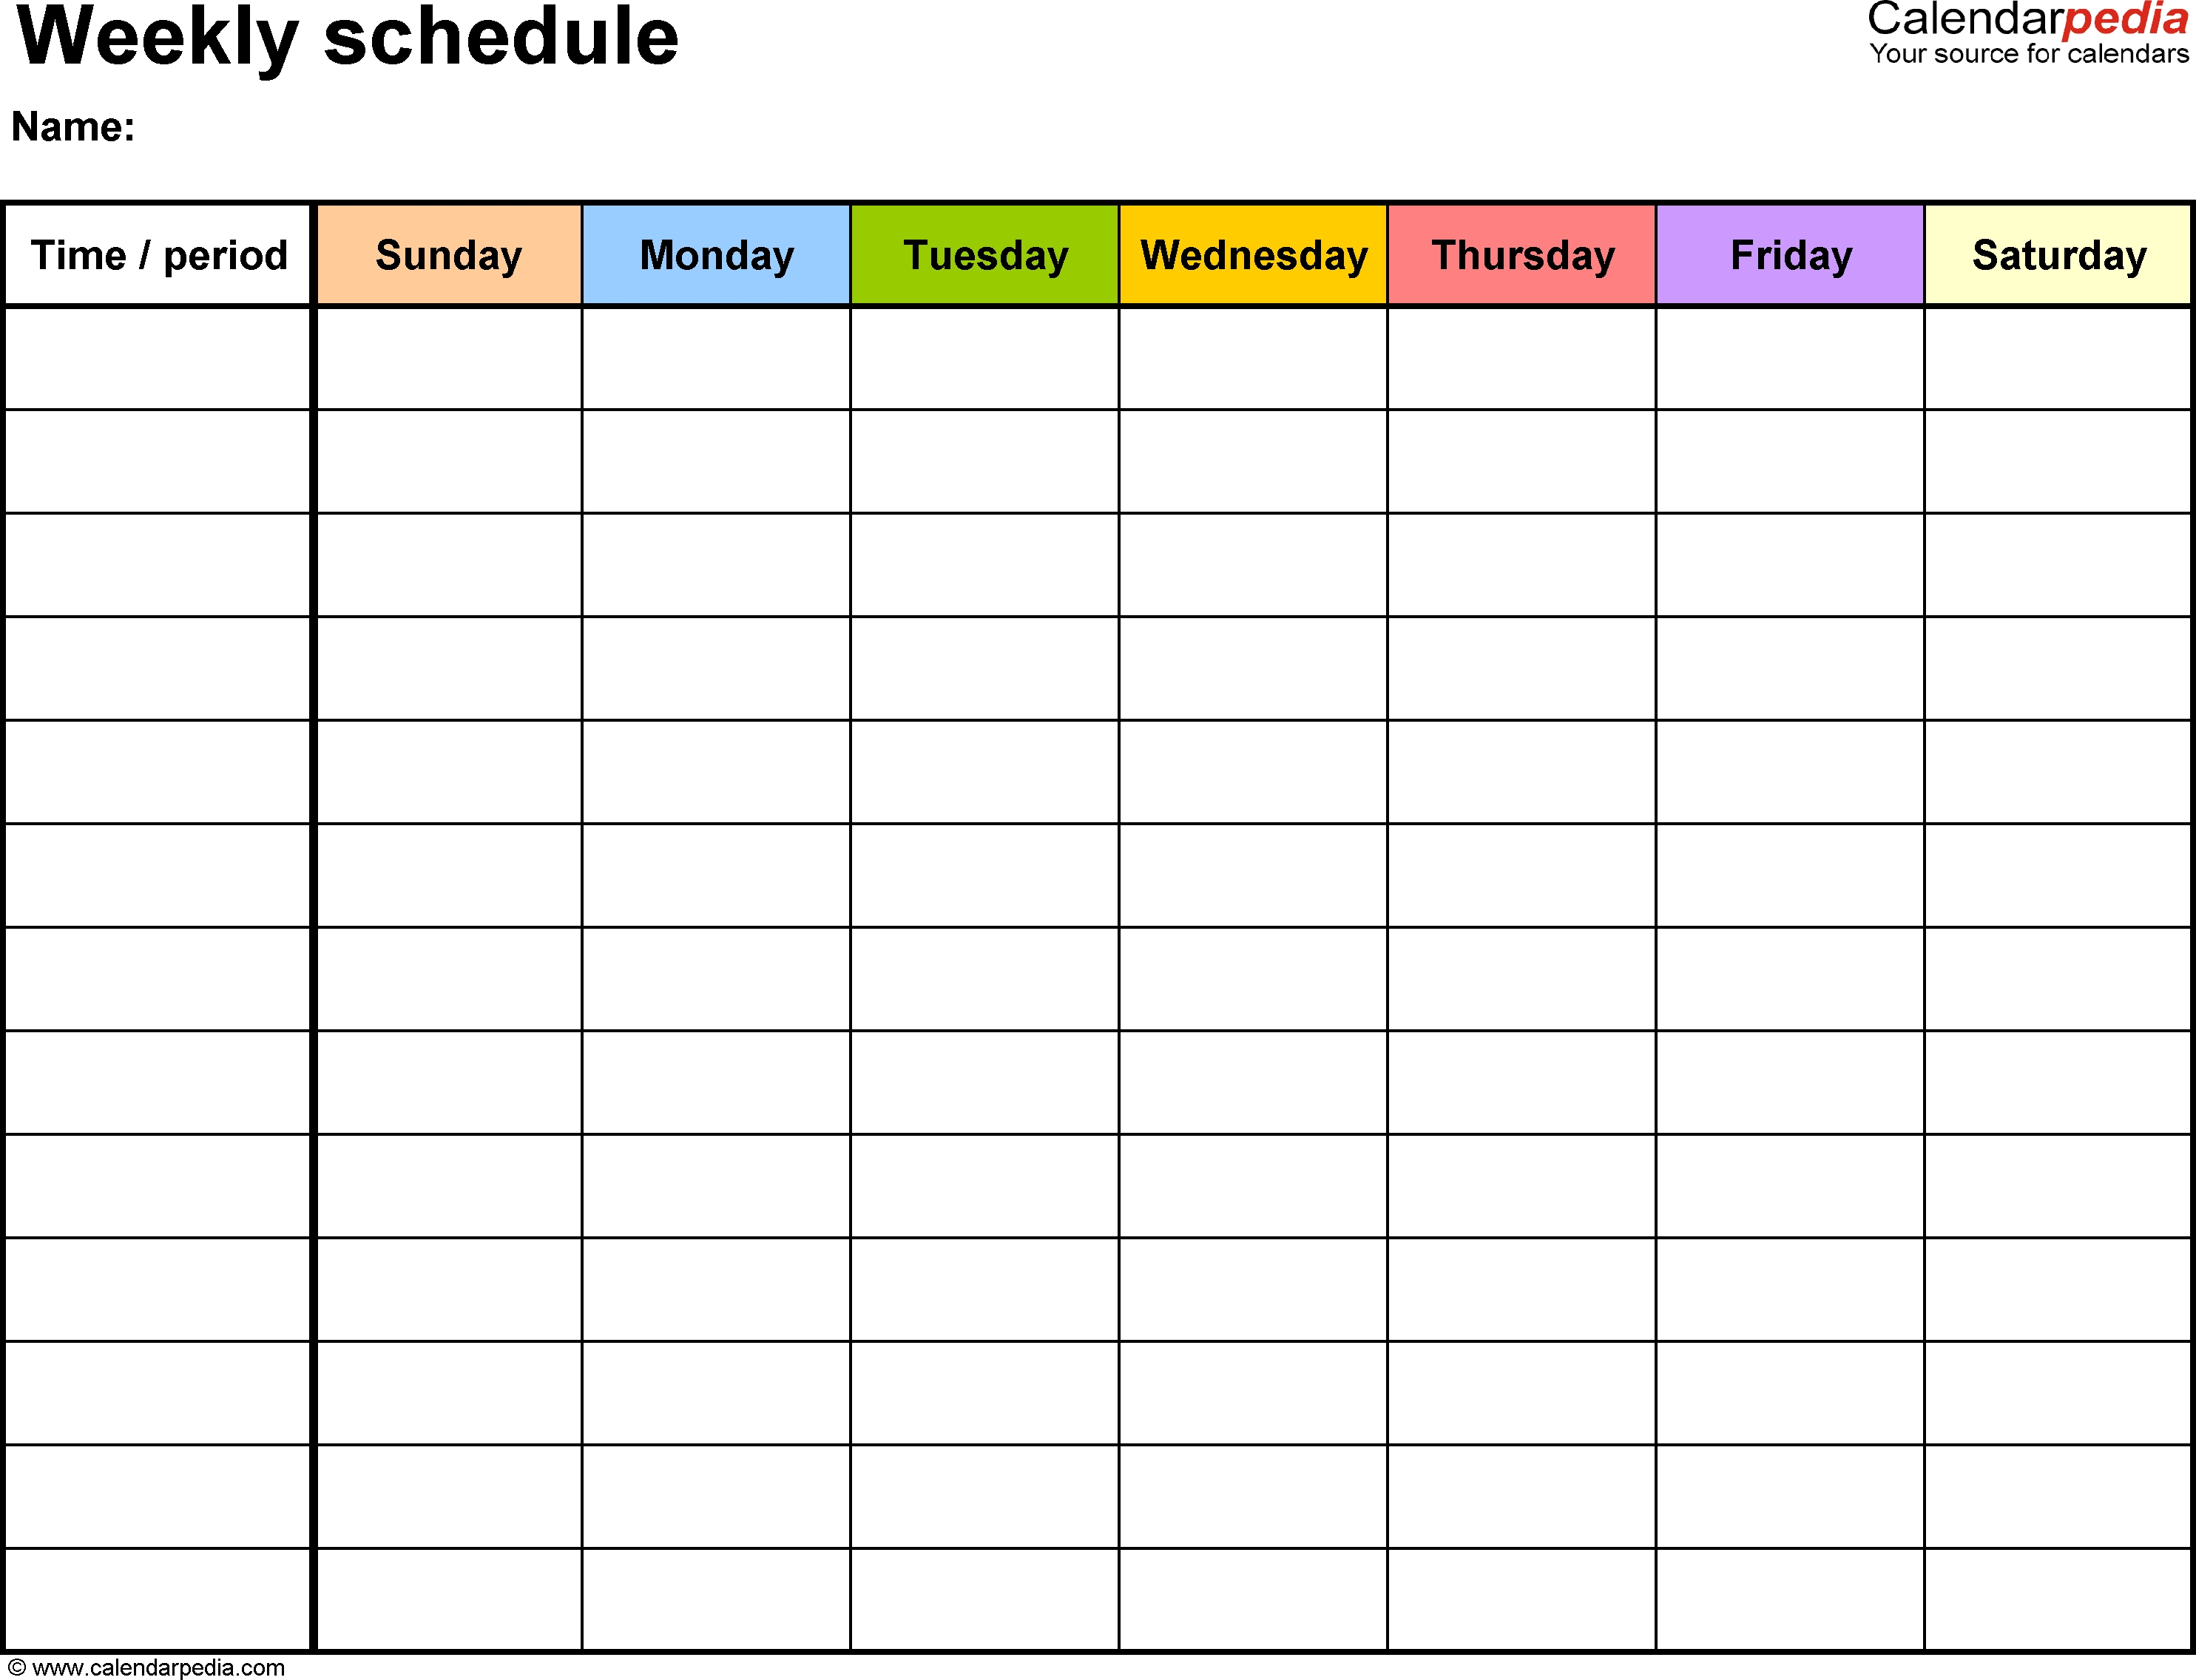 Free Weekly Schedule Templates For Word - 18 Templates  7 Day Weekly Planner Template Printable